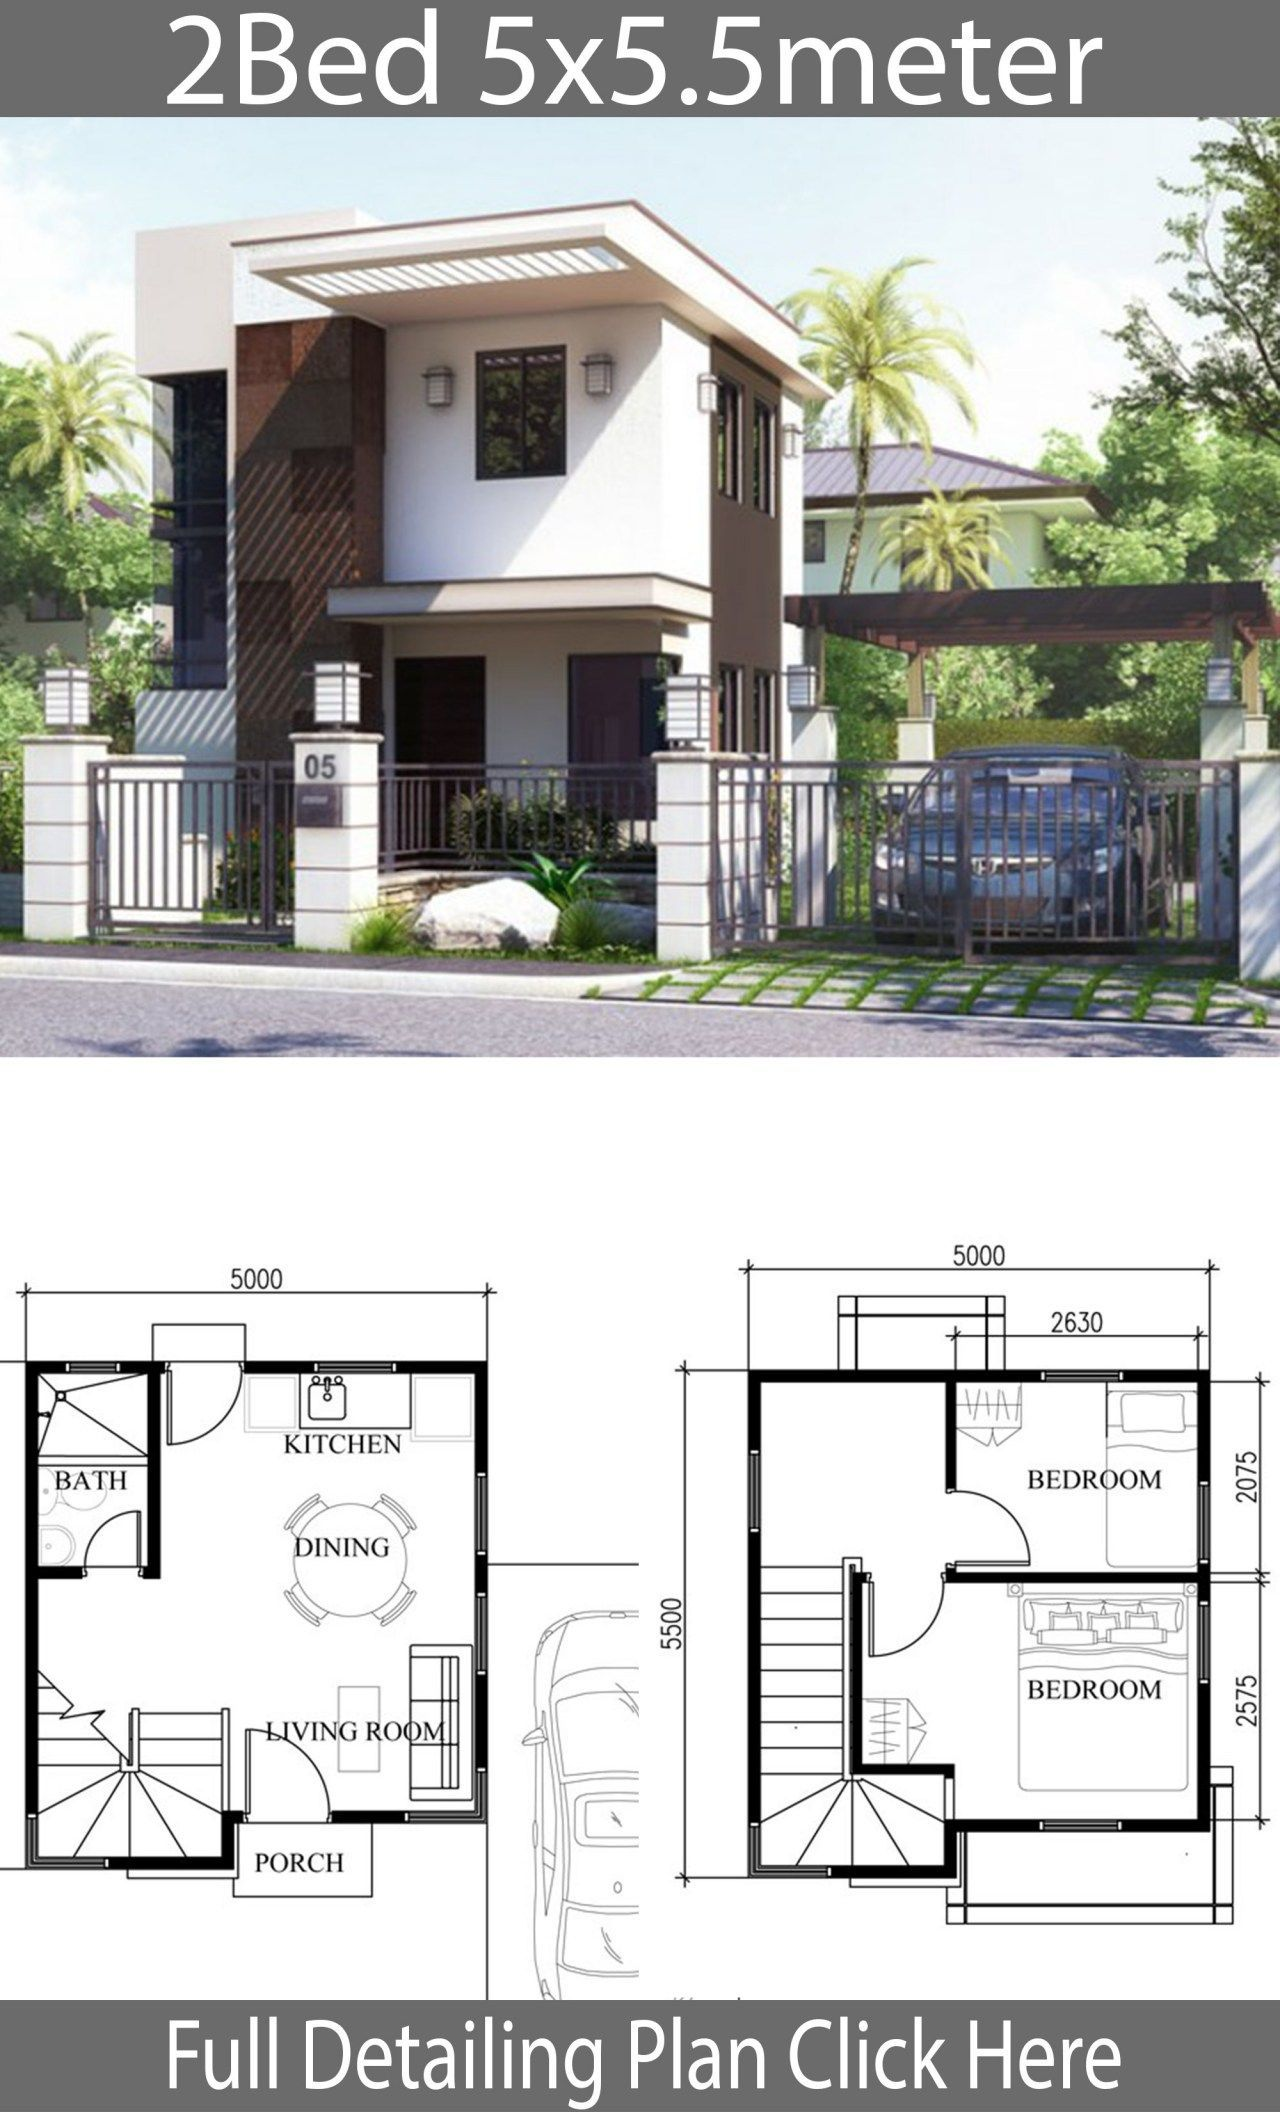 Small Home Design Plan 5x5 5m With 2 Bedrooms Small House Micro House Plans House Front Design Small Modern Home